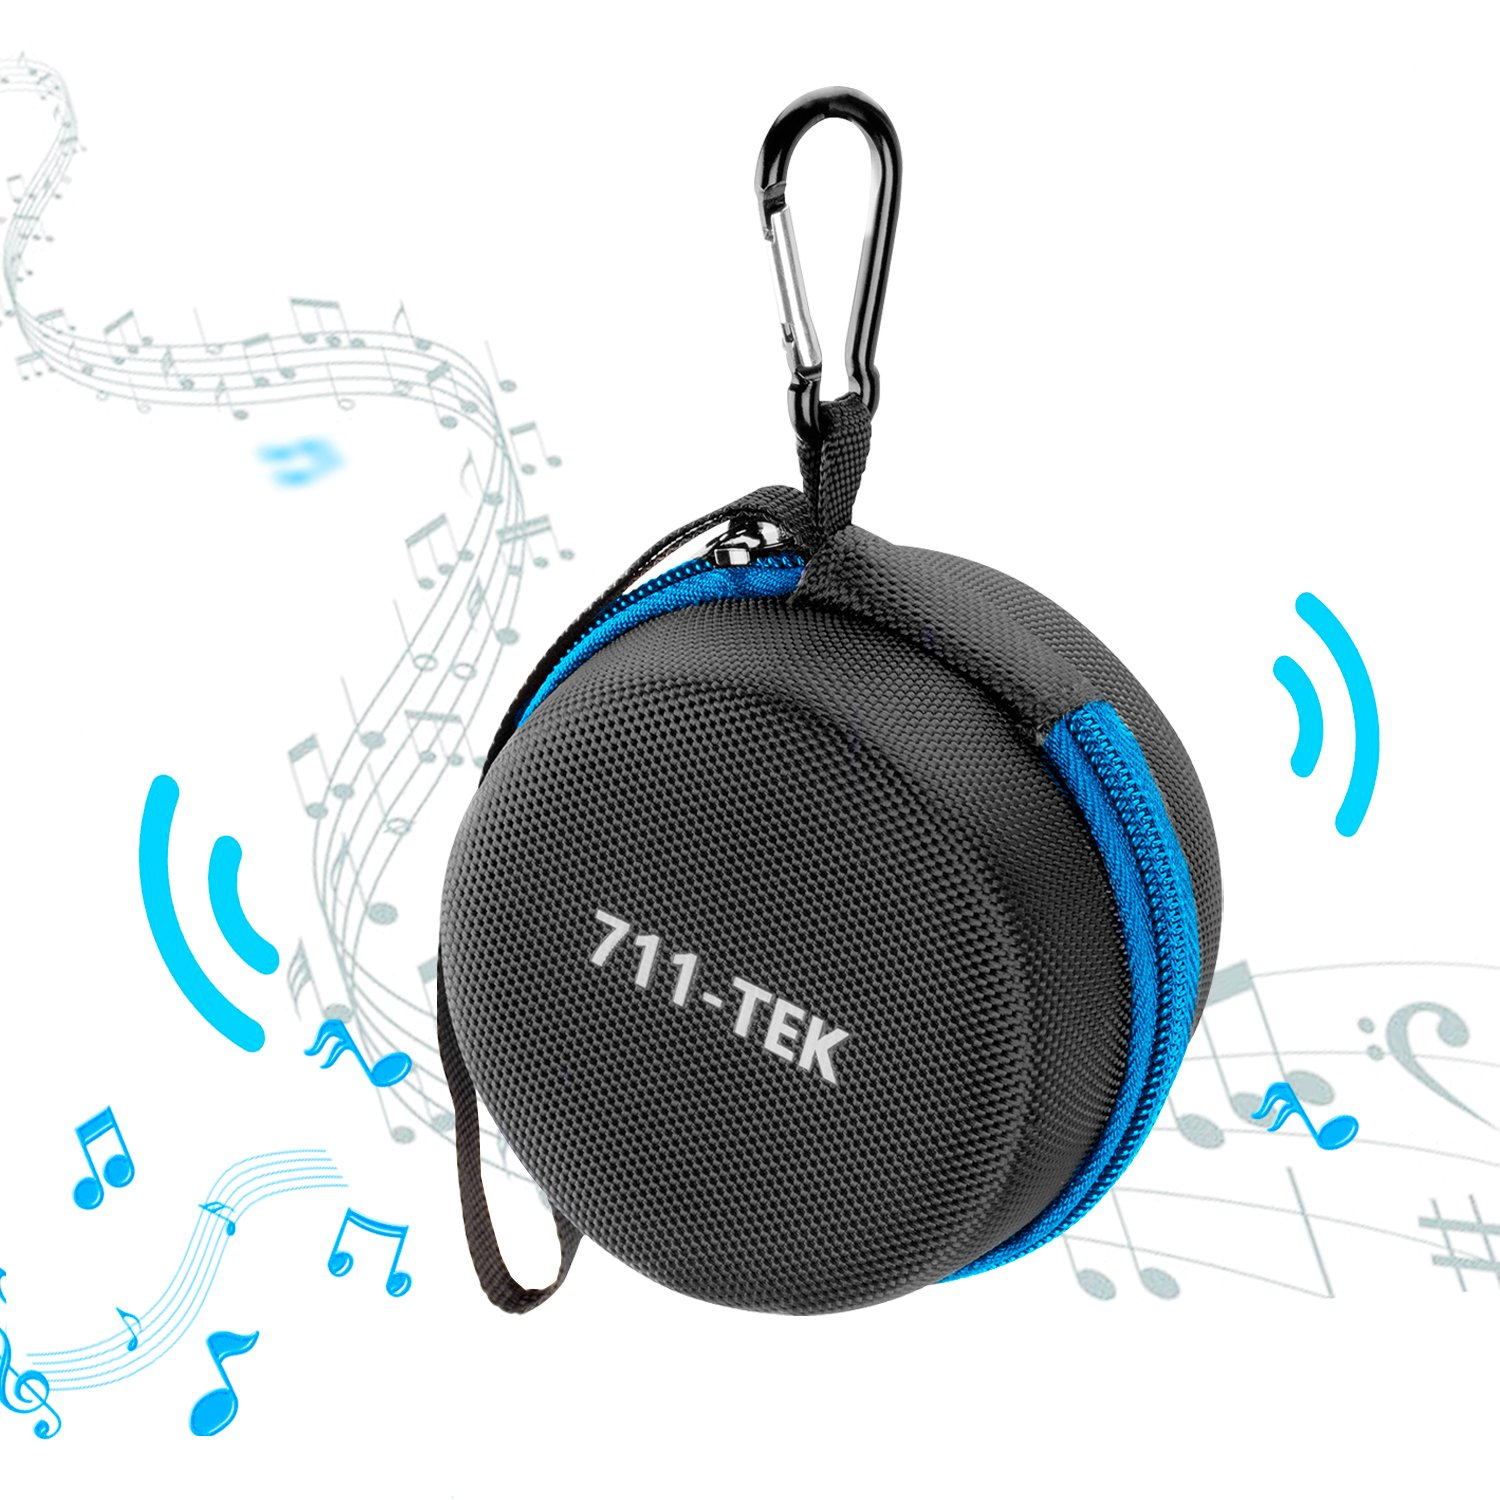 711TEK Echo Dot (2nd Generation) Case, Portable Carrying Travel Bag Protective Hard Case Cover with Screw-Lock Carabiner, Fits Phone Headset, Charger and USB Cable (Black)